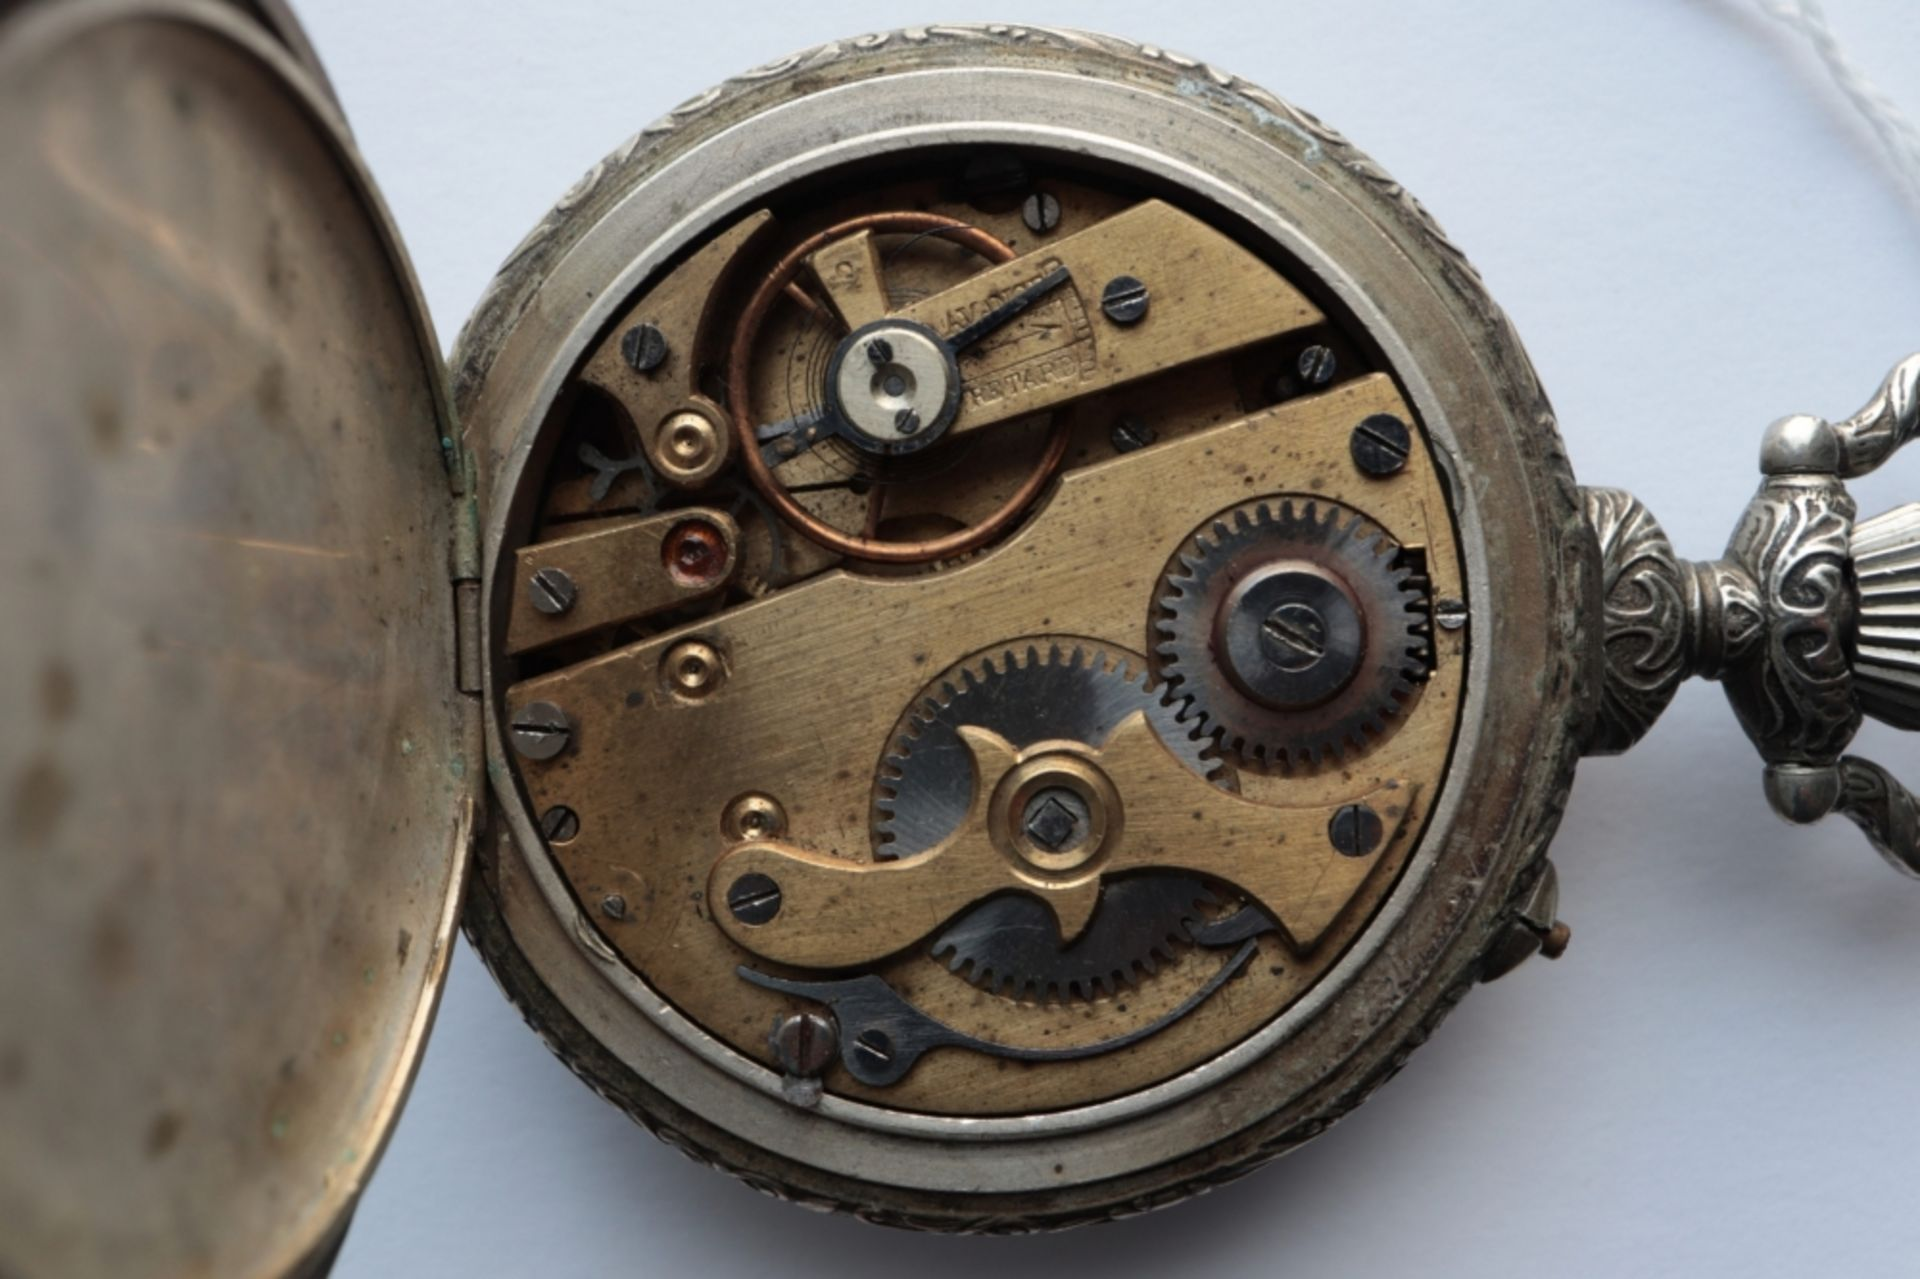 Lot of 6 watches including 4 pocket watches, a travel alarm clock and a wristwatch. - Image 7 of 7